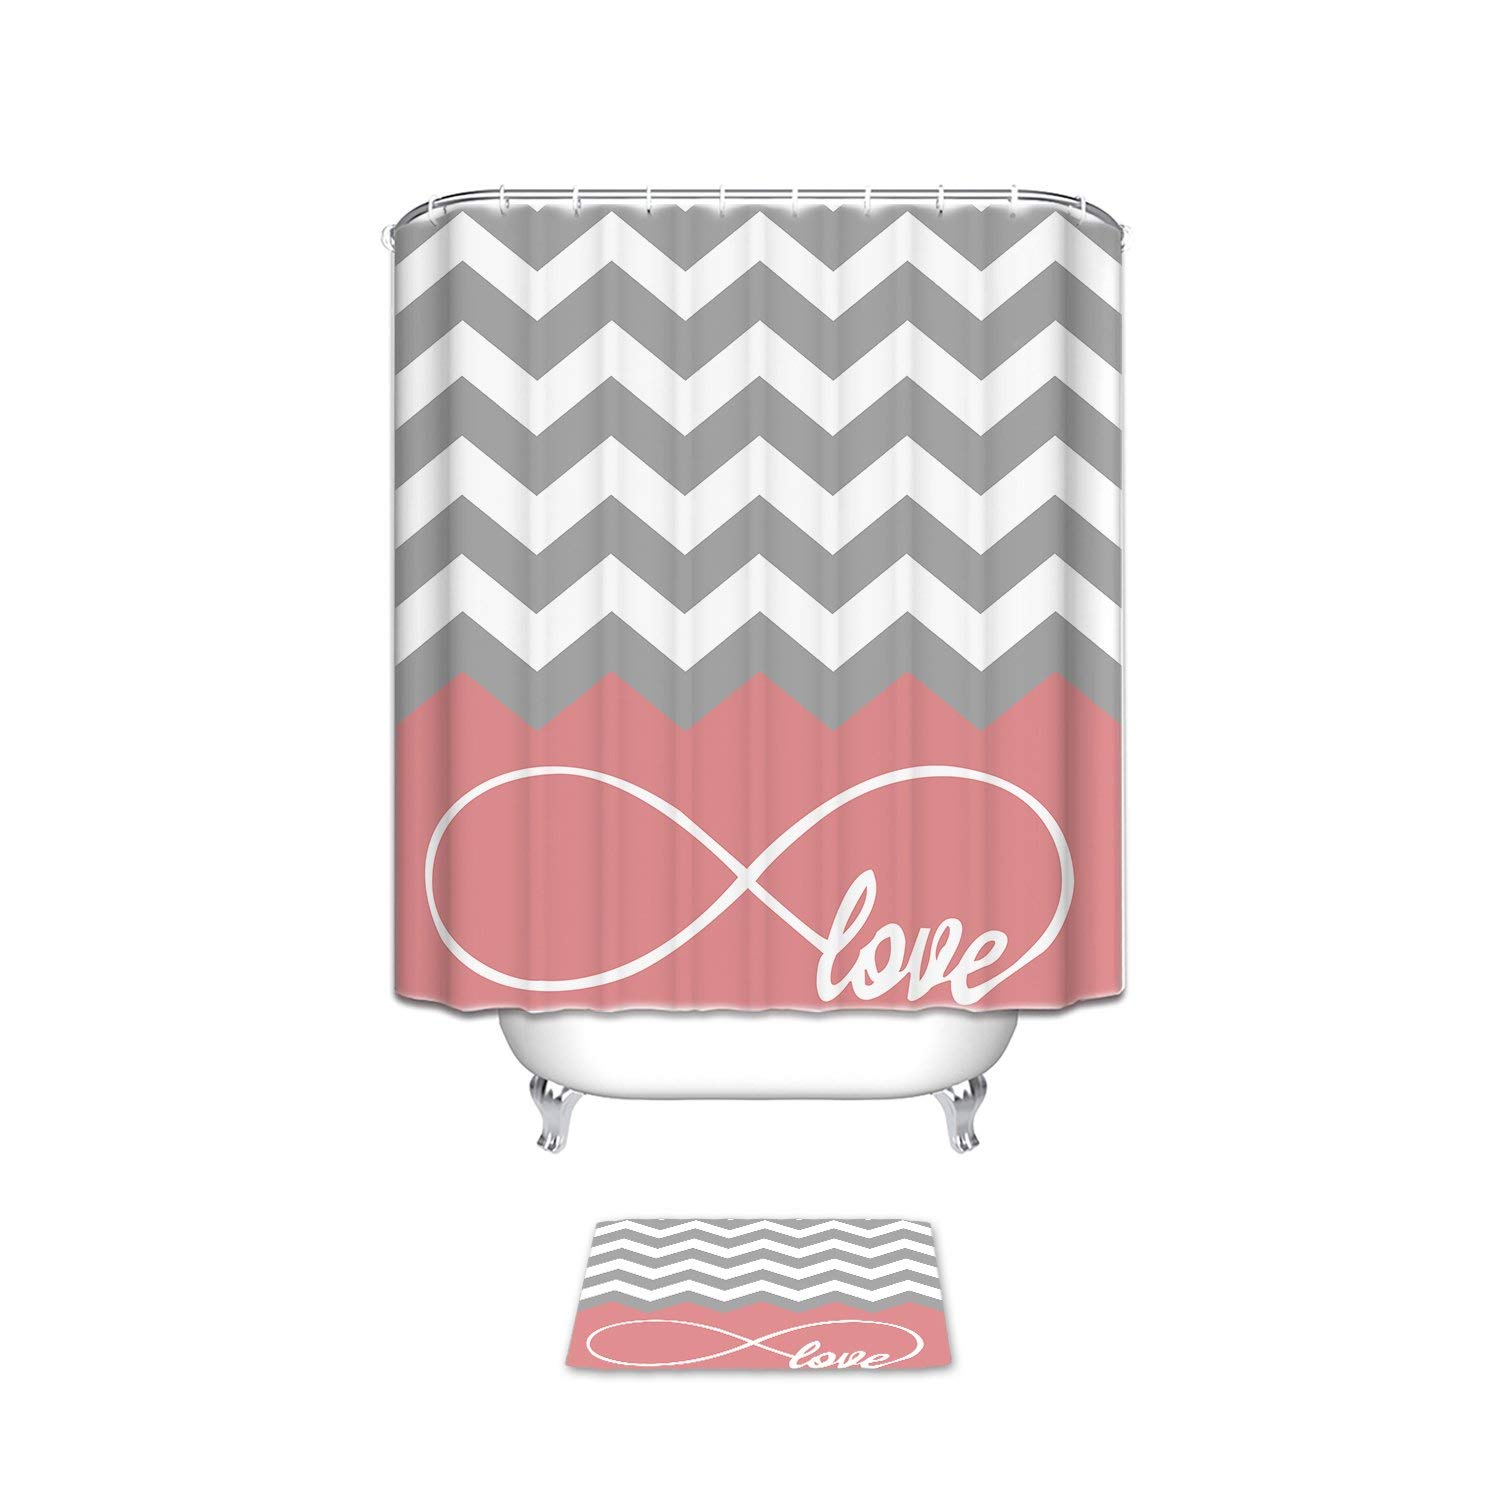 CHARM HOME Love Infinity Forever Love Symbol Chevron Pattern pink Grey White Waterproof Polyester Bathroom Shower Curtain and Doormat Sets